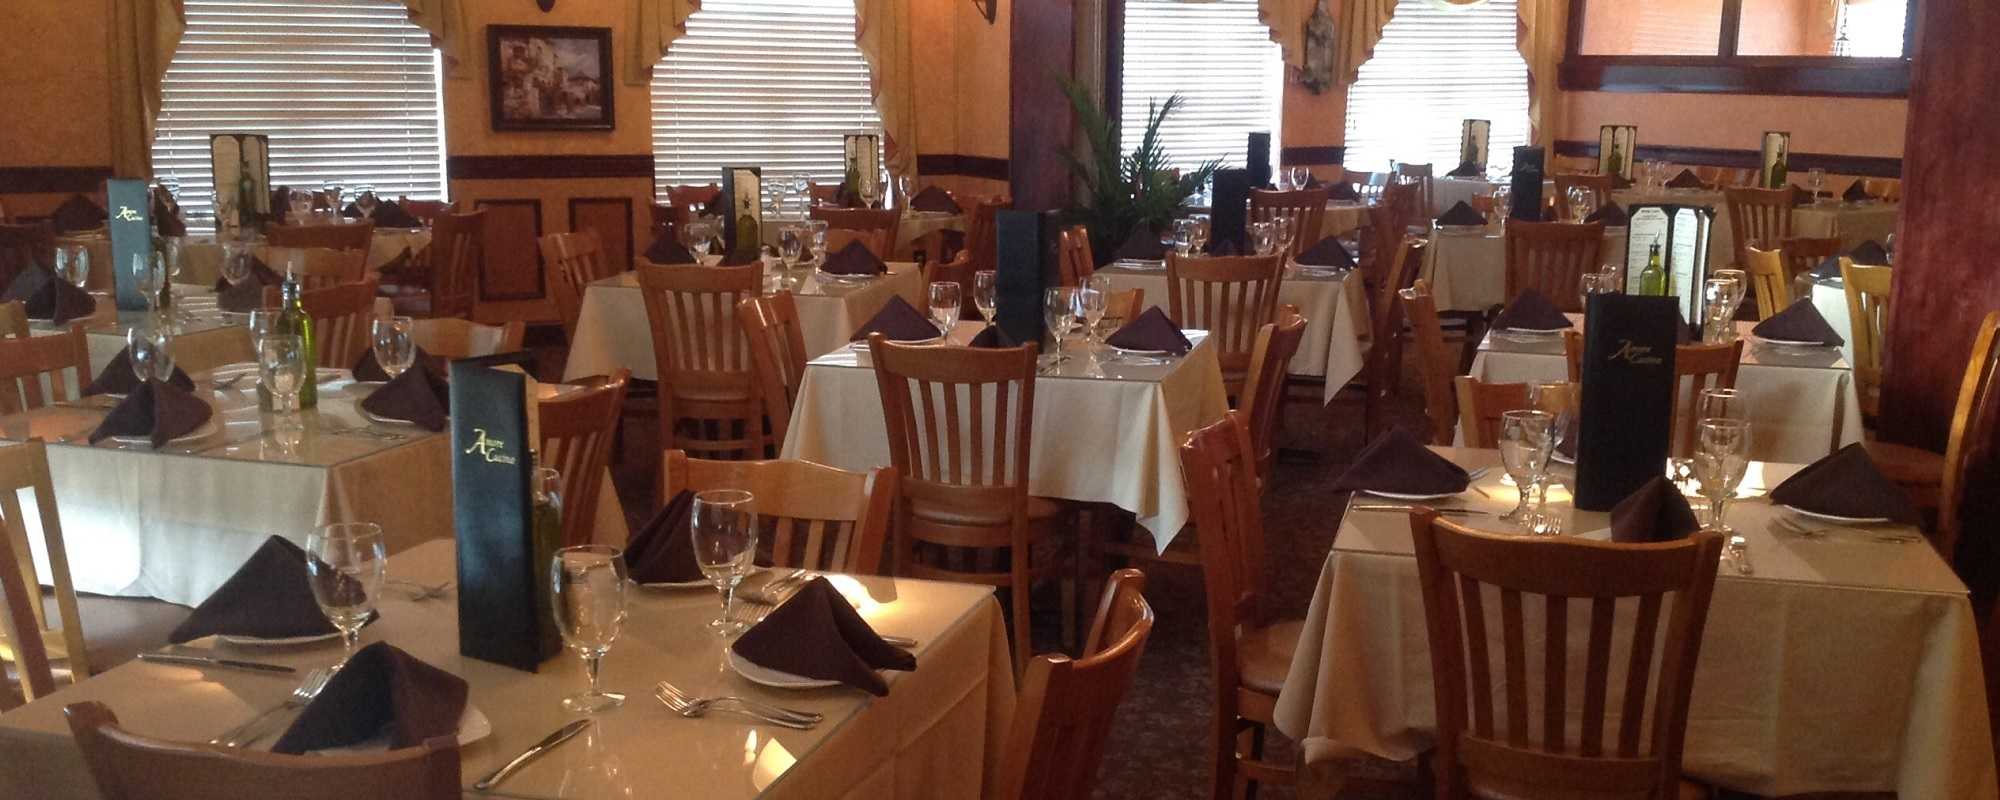 Amore Cucina Restaurant Wayne Nj Amore Of Wayne Fine Italian Cuisine Steak Close By In Wayne Nj